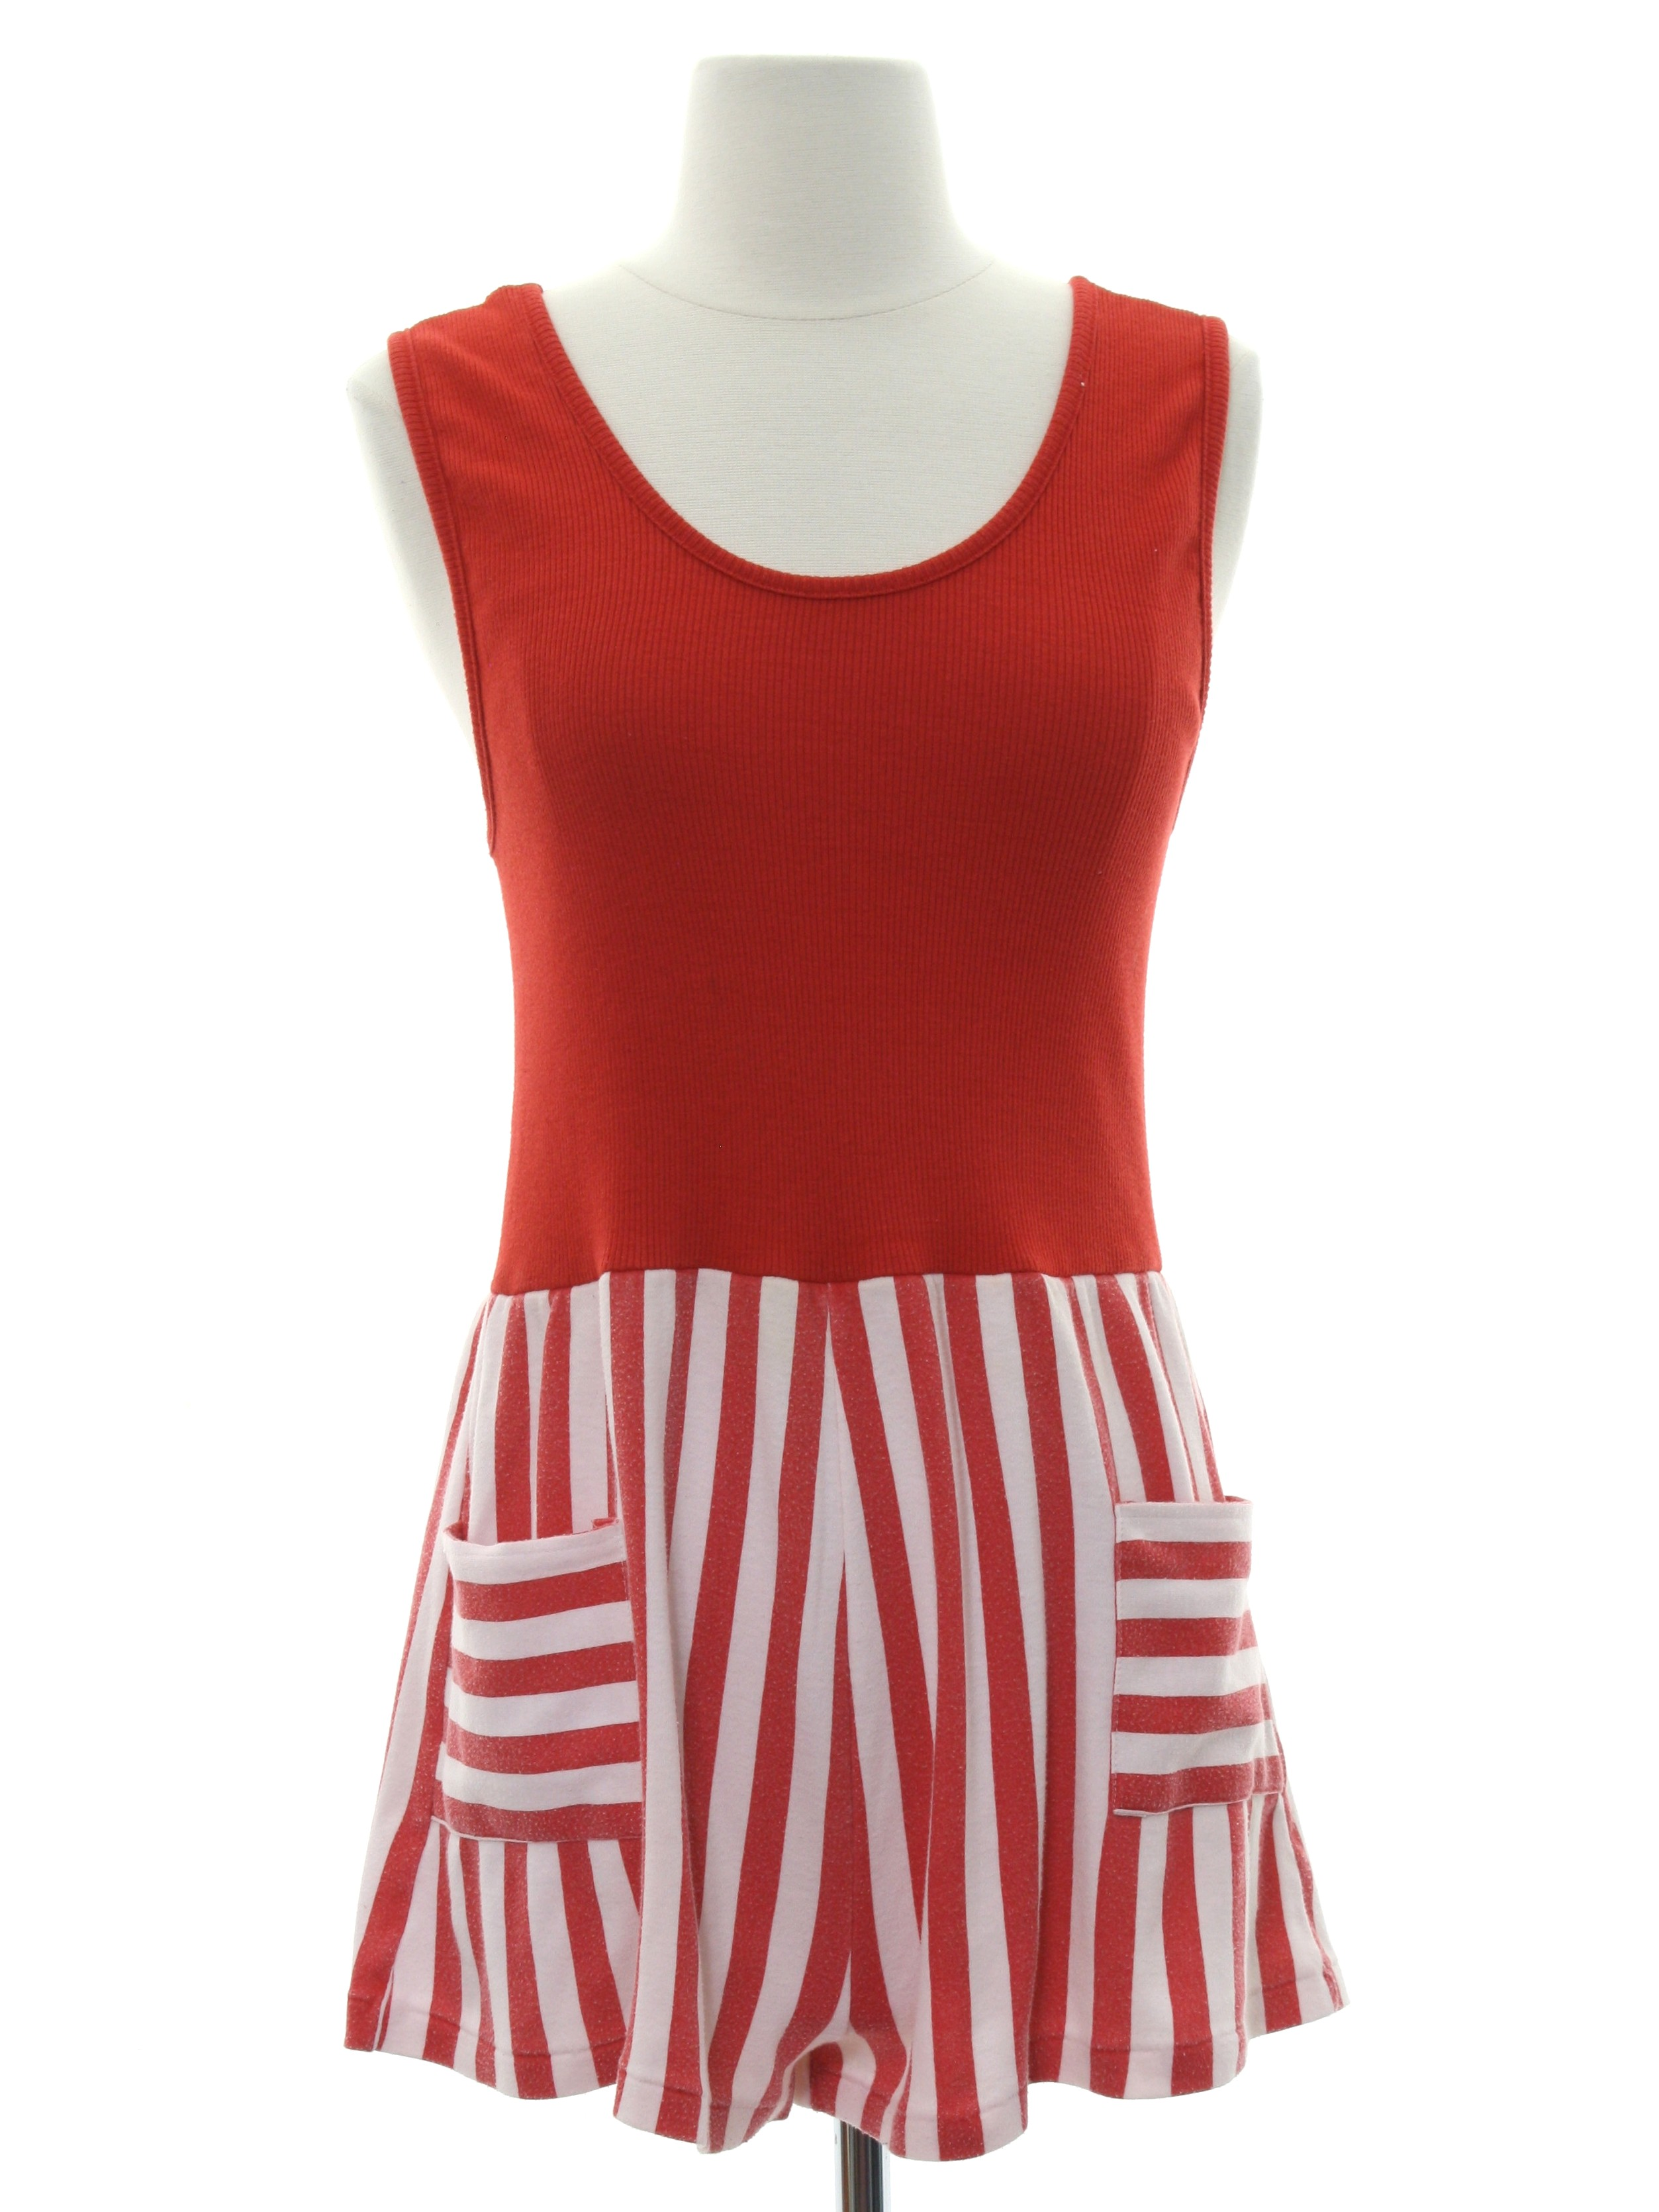 0c01cc34bbb1 80 s Vintage Suit  80s -Holly N Polly- Womens red and white background  cotton polyester jersey sleeveless